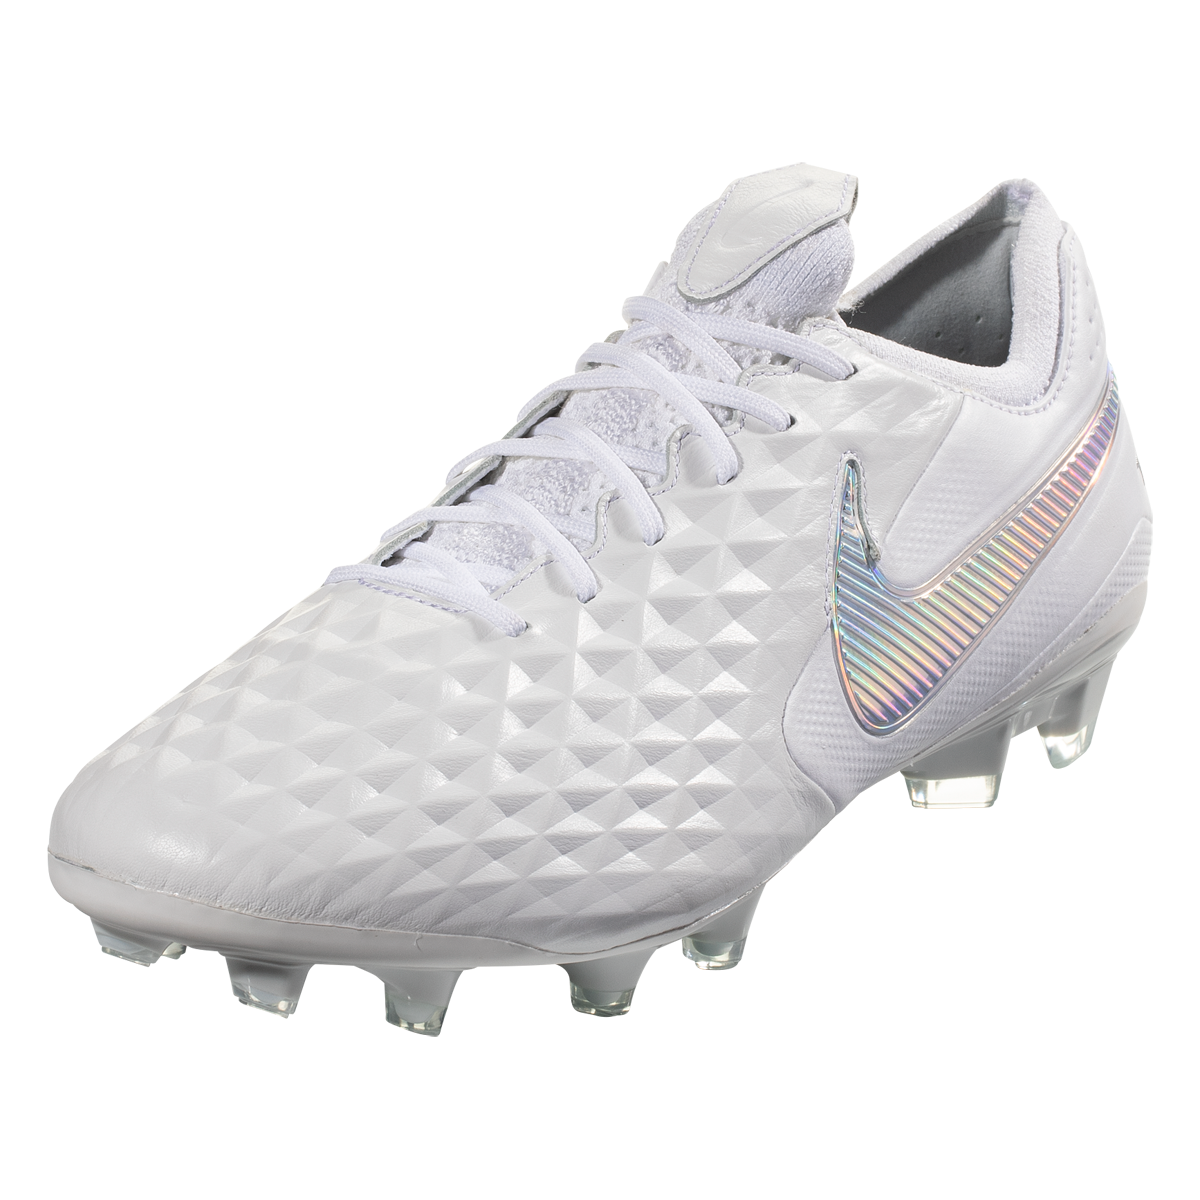 Nike Tiempo Legend 8 Elite Fg Soccer Cleat White Silver 4 Soccer Cleats Nike Pink Soccer Cleats Girls Soccer Cleats